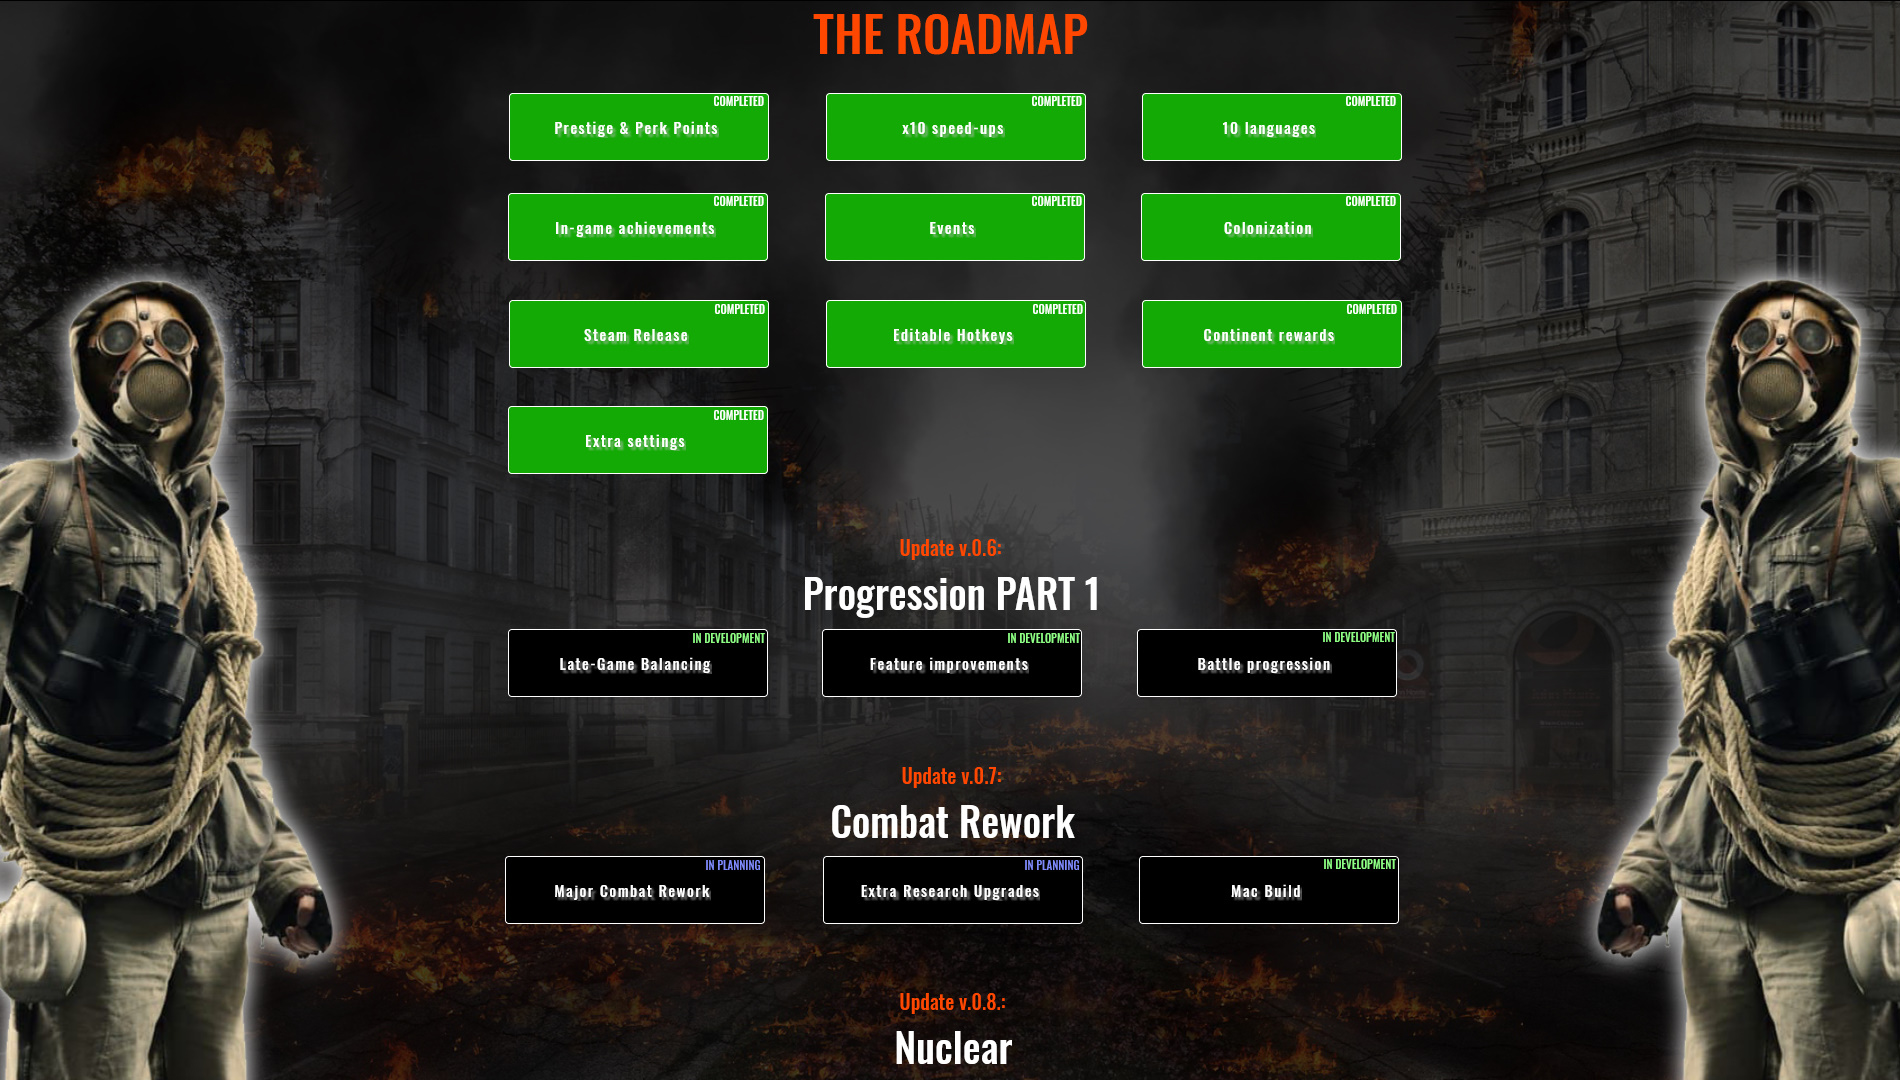 Roadmap with versions included